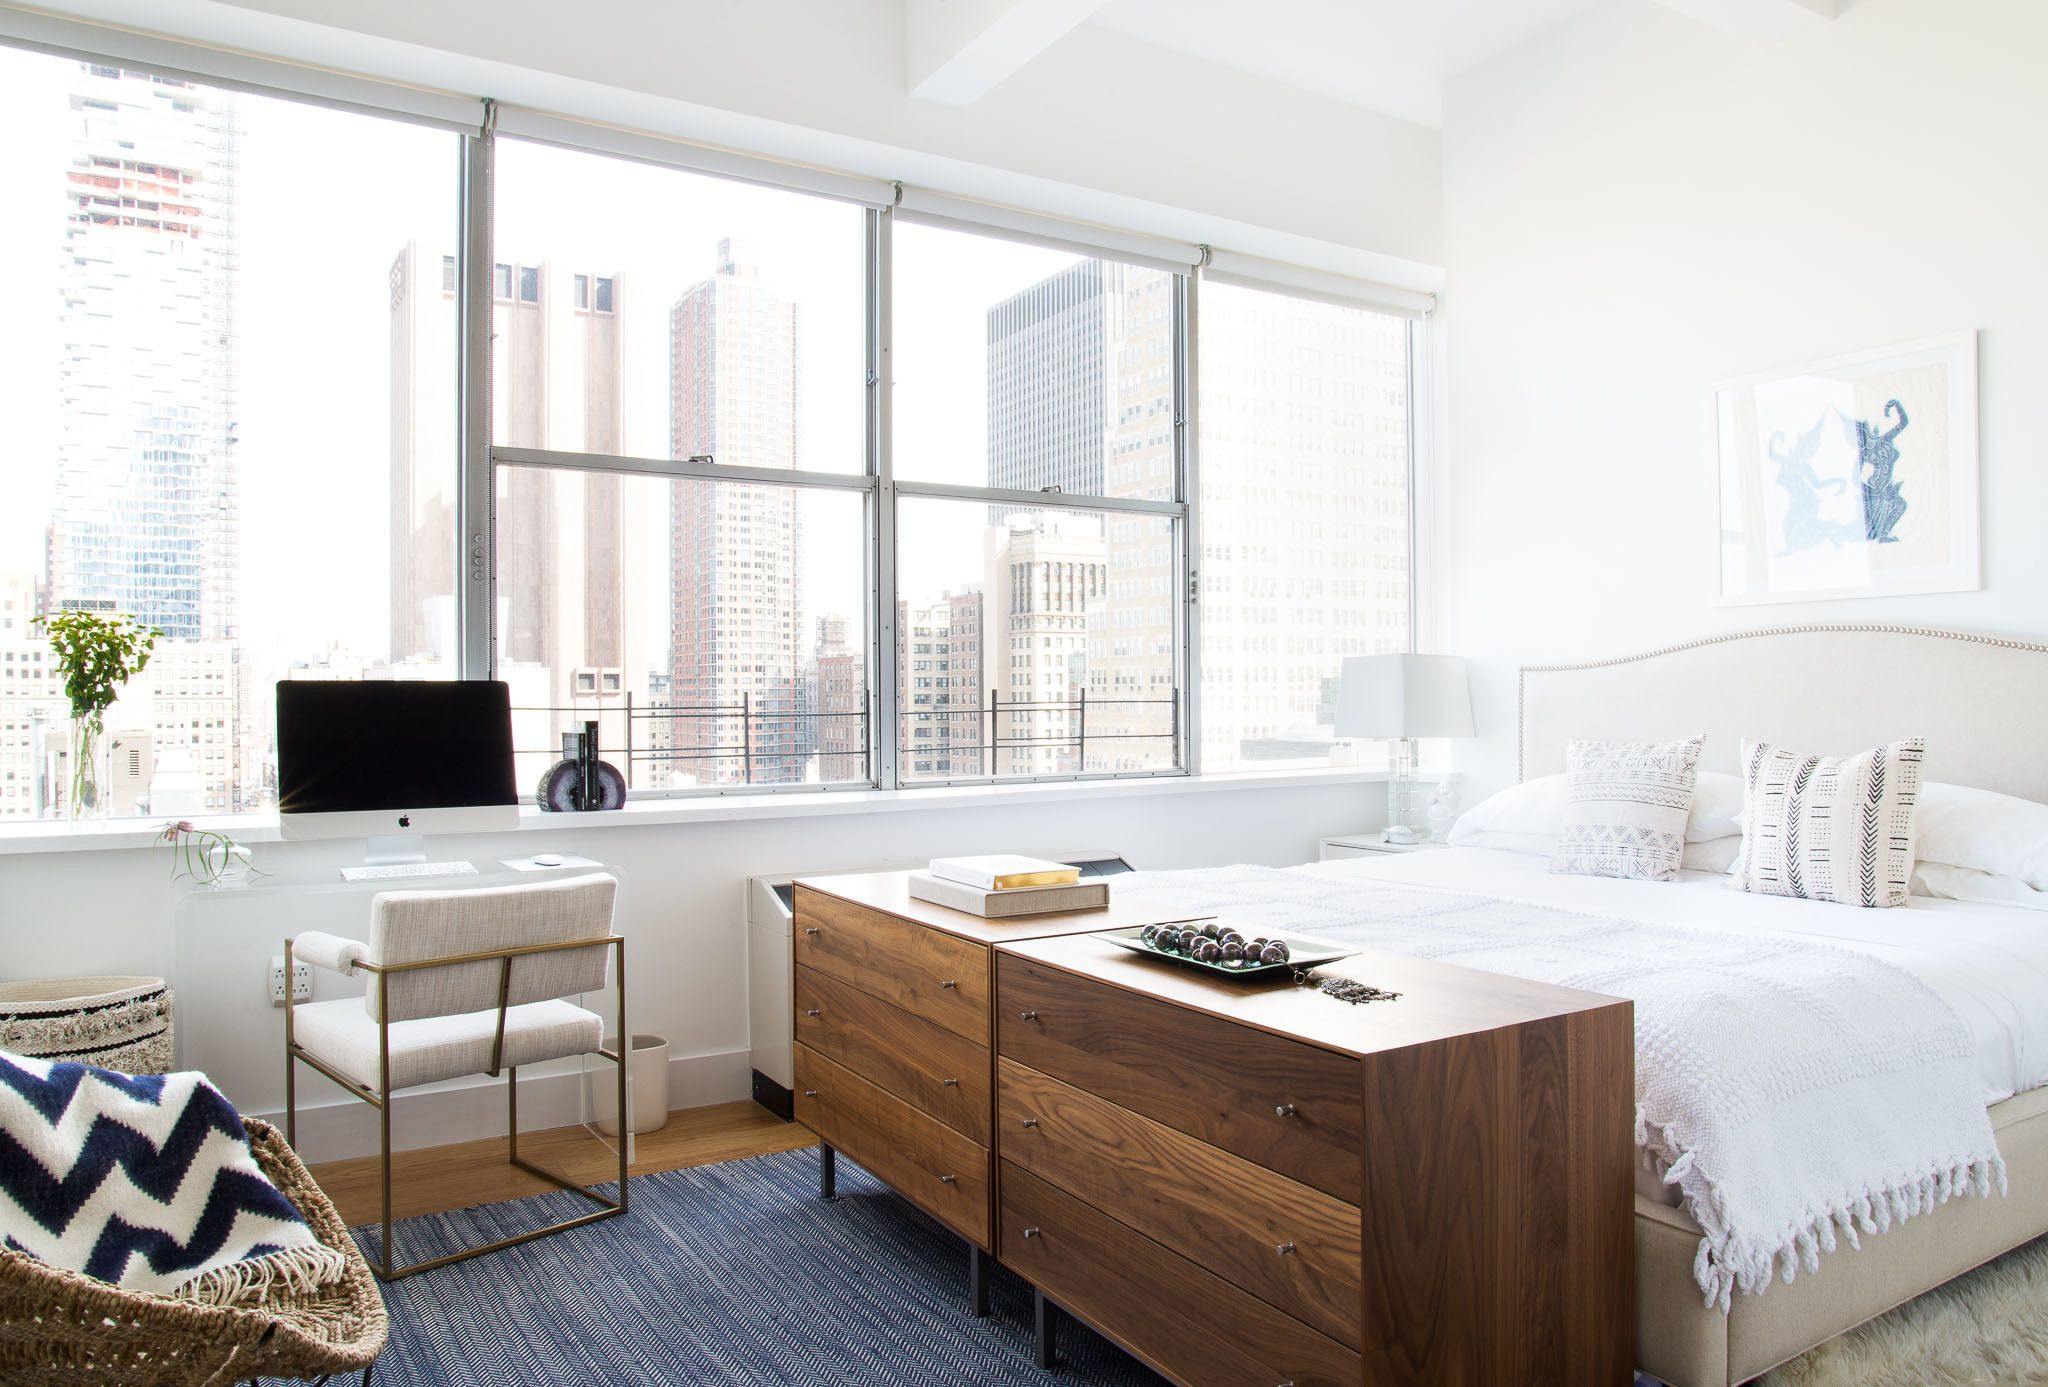 10 Bedrooms that Mix His + Her Styles Seamlessly Nyc